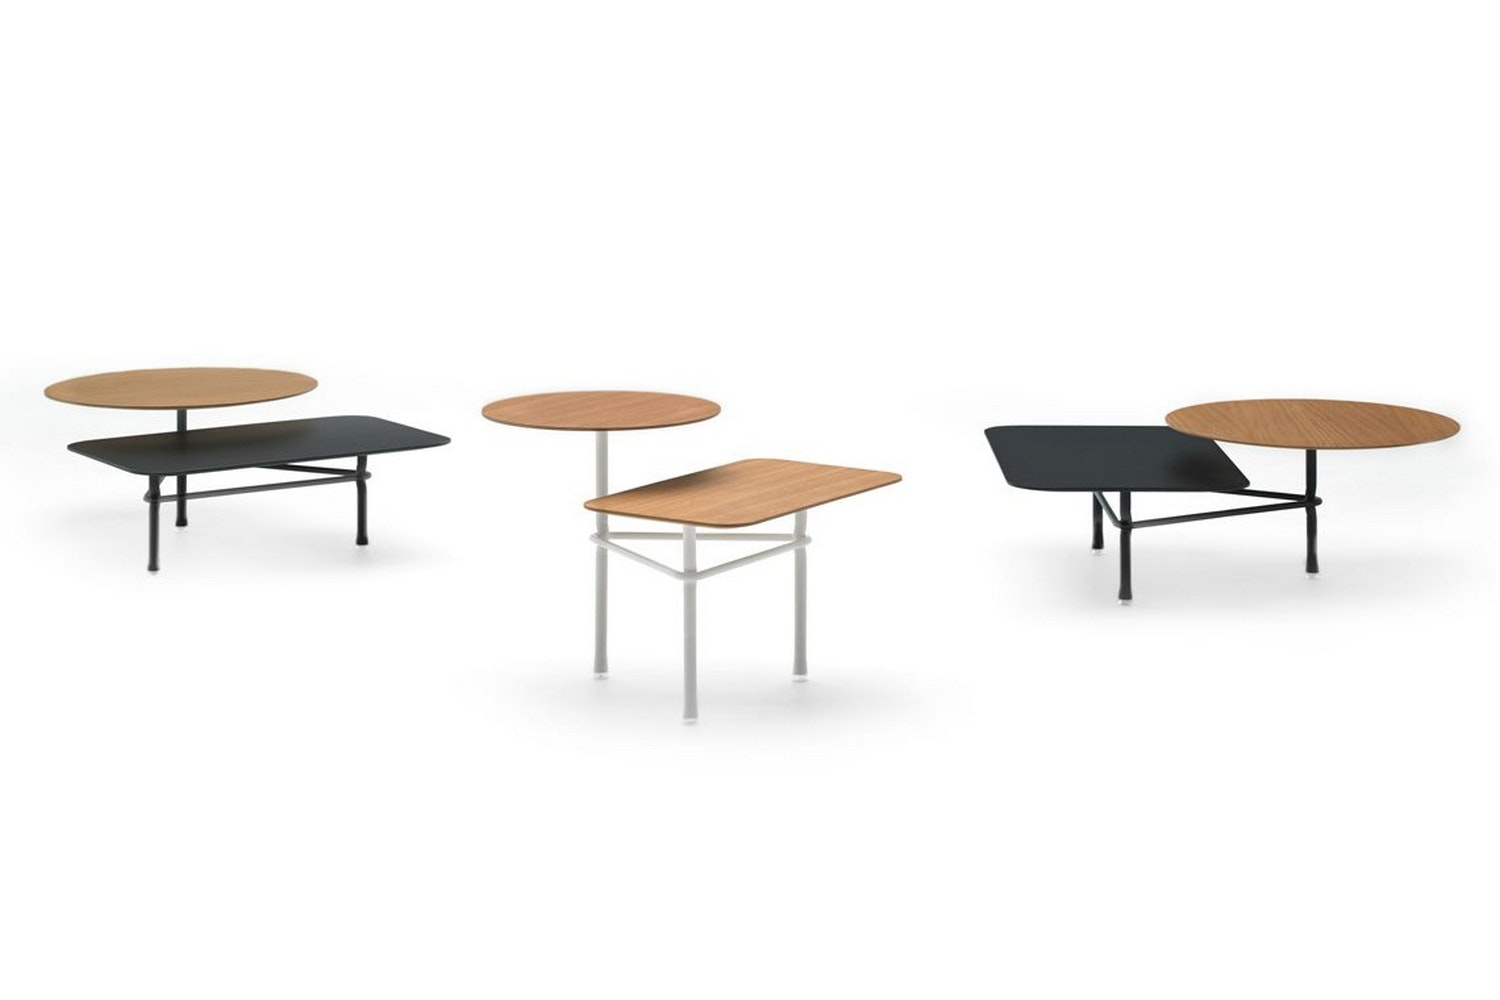 Tiers Table by Patricia Urquiola for Viccarbe